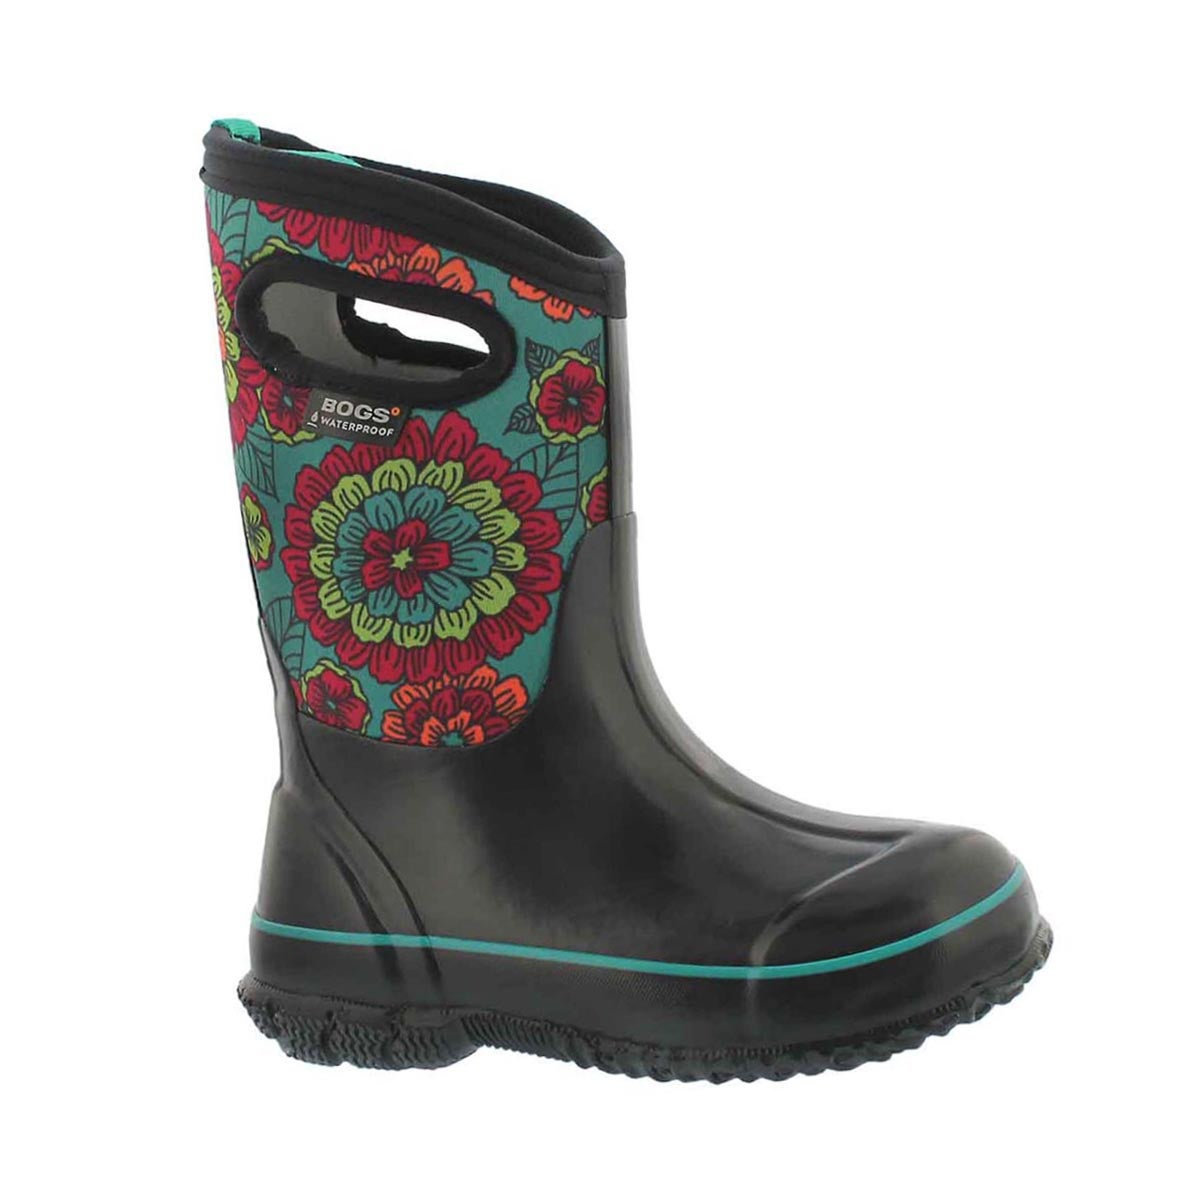 Girls' CLASSIC PANSIES blk multi waterproof boots